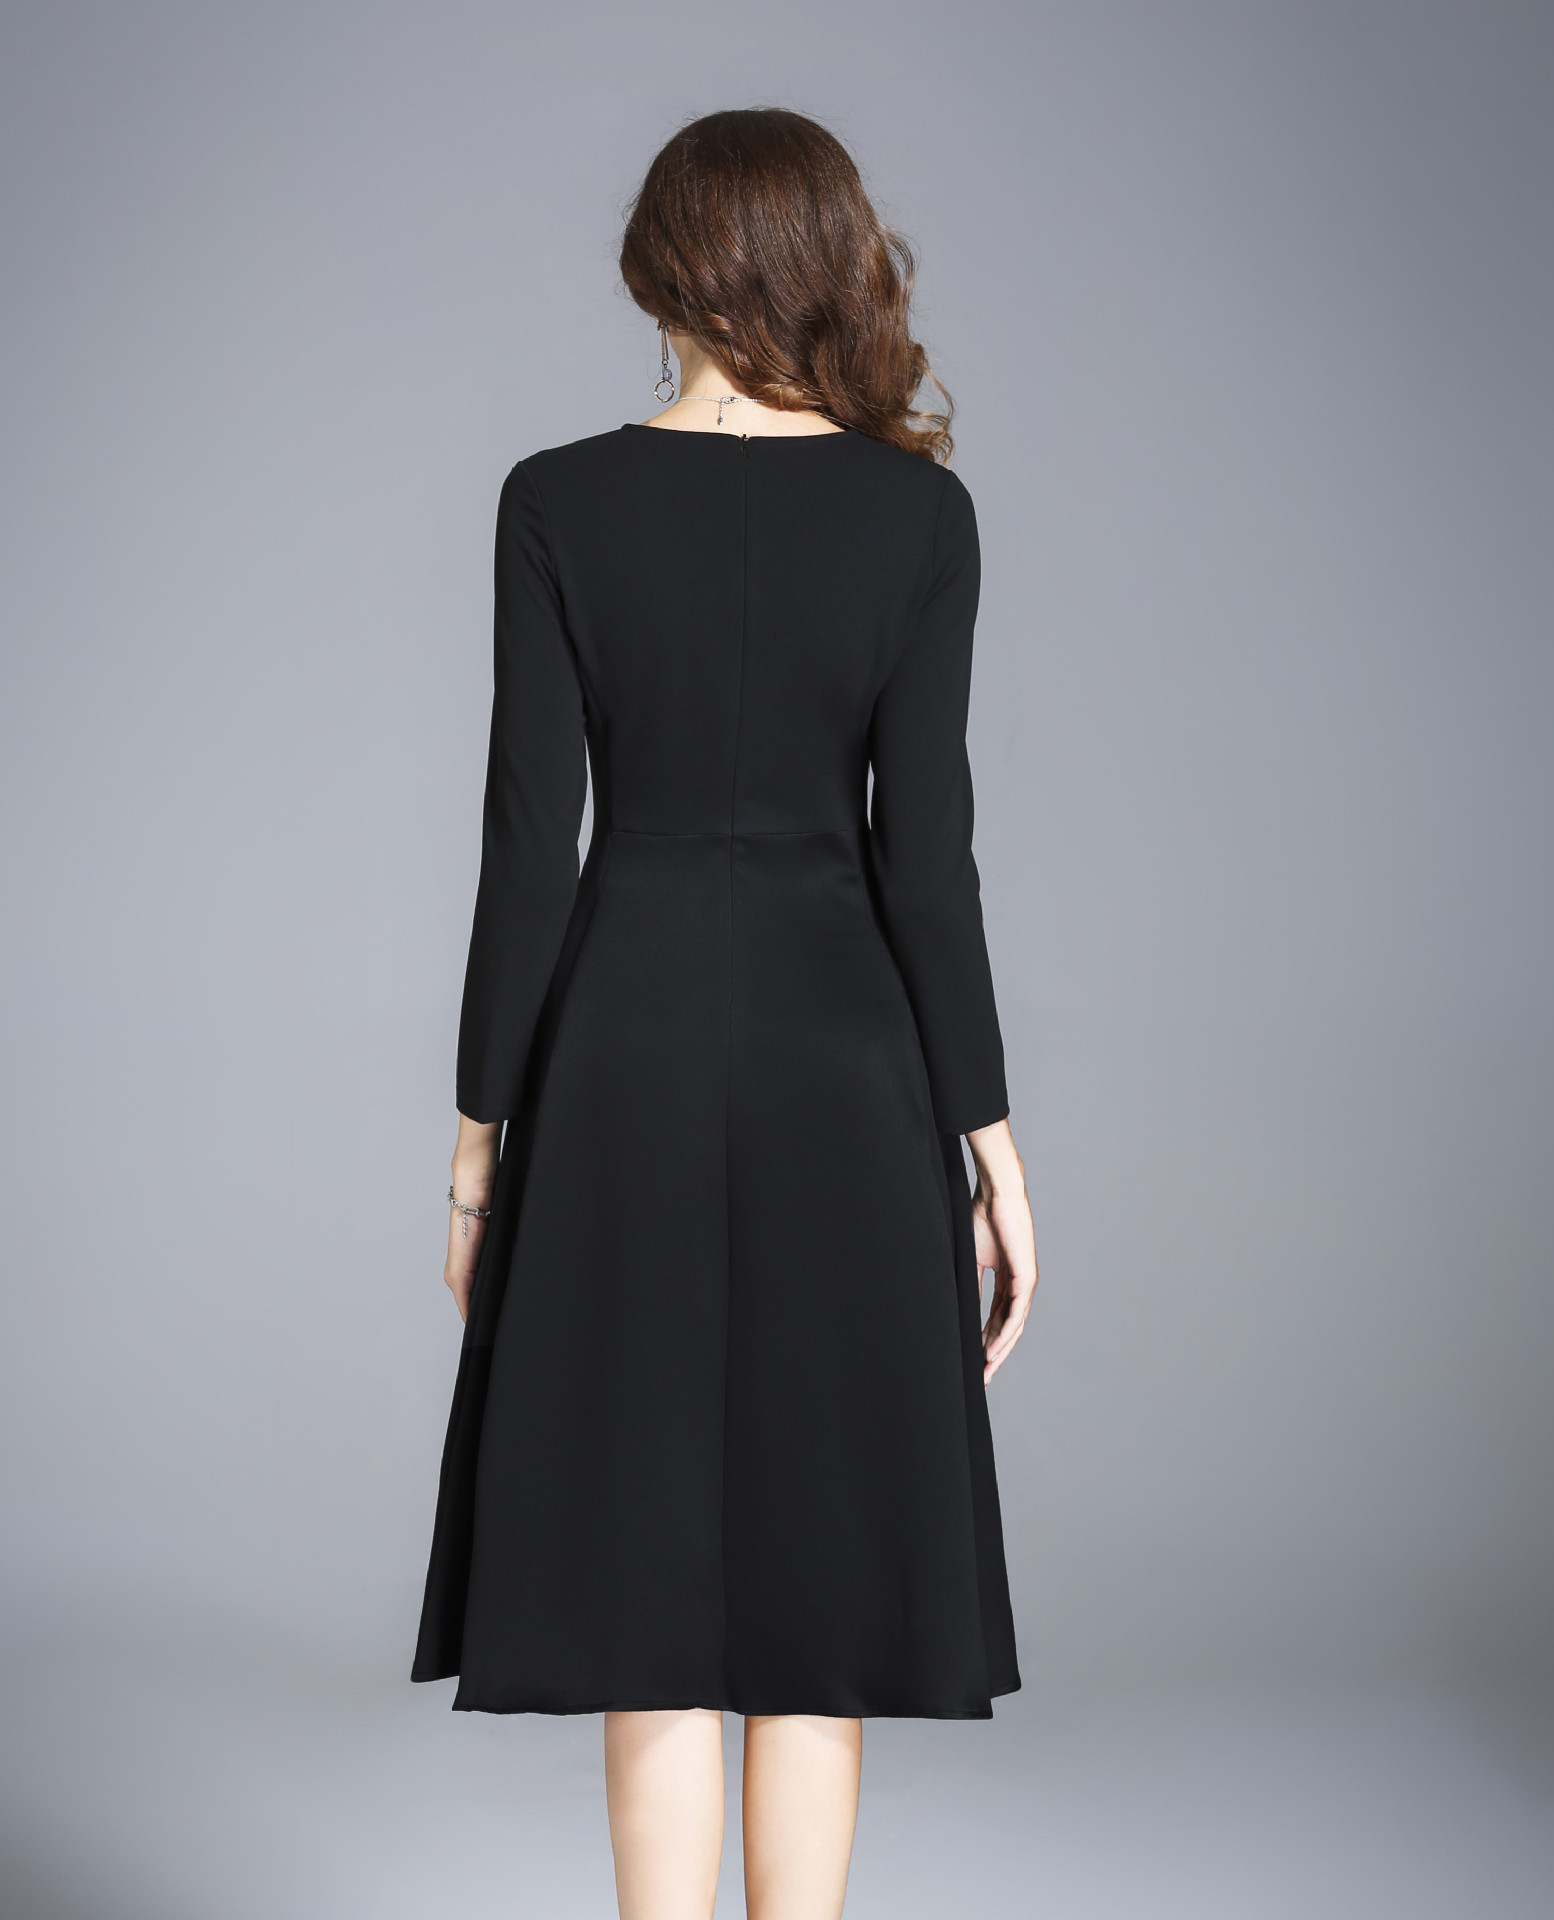 Girl Winter Autumn Women Casual Long Dresses Evening Party Dress Female Long Sleeve Black Sexy Midi Dress Office Pleated Dress